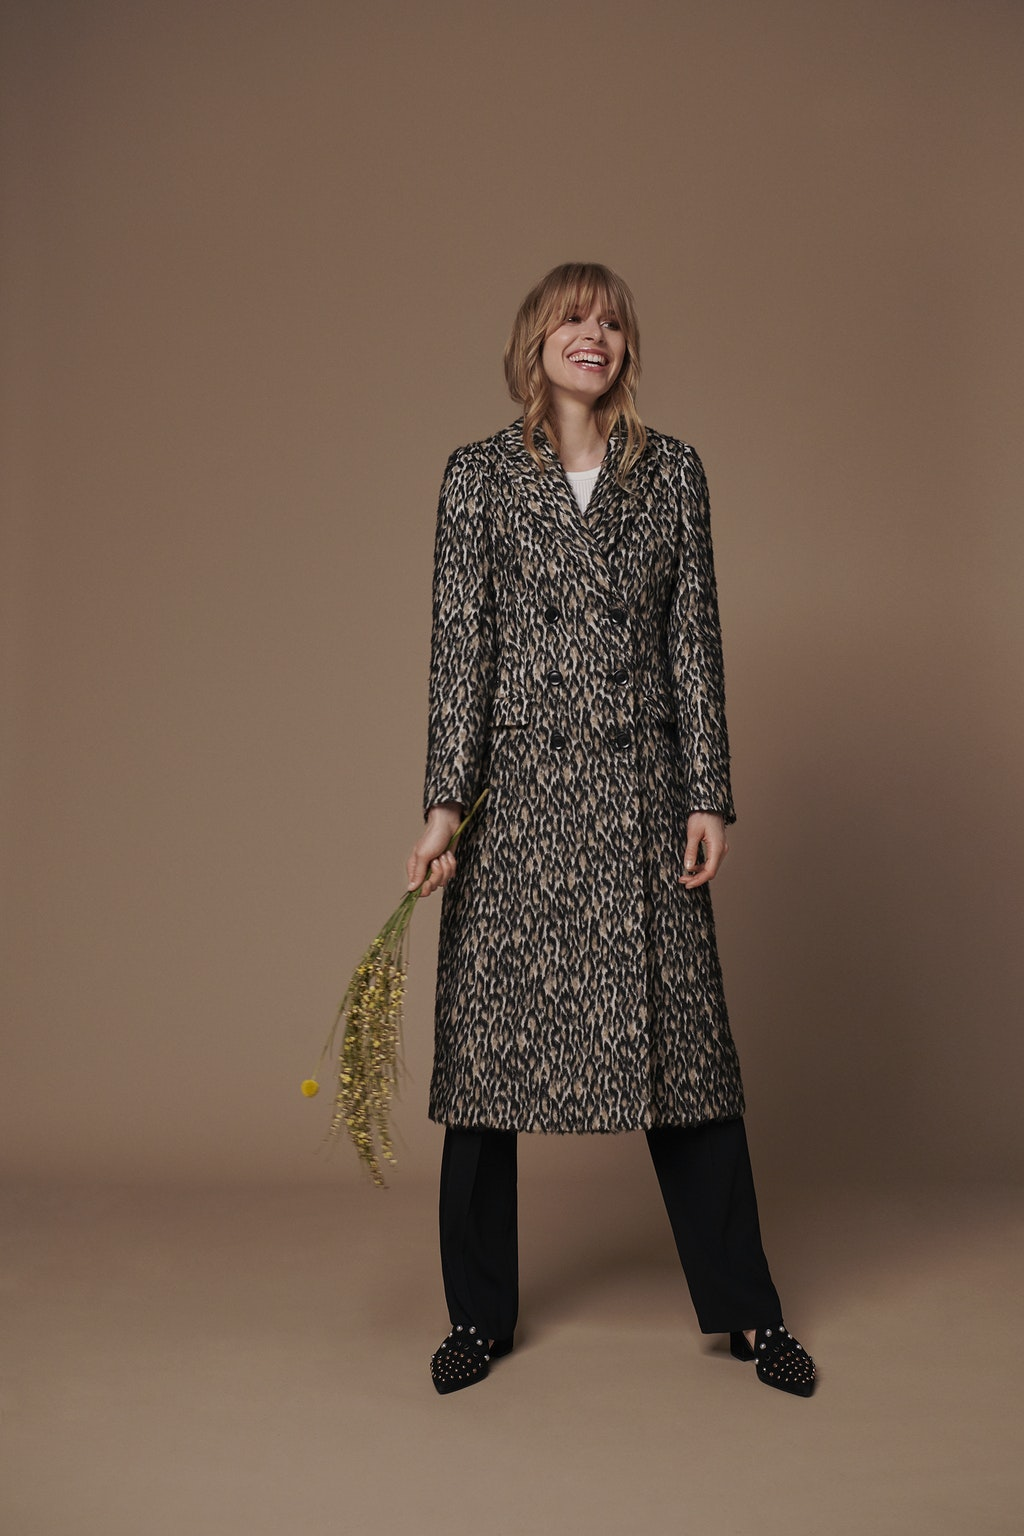 Karen Millen AW18 Lookbook